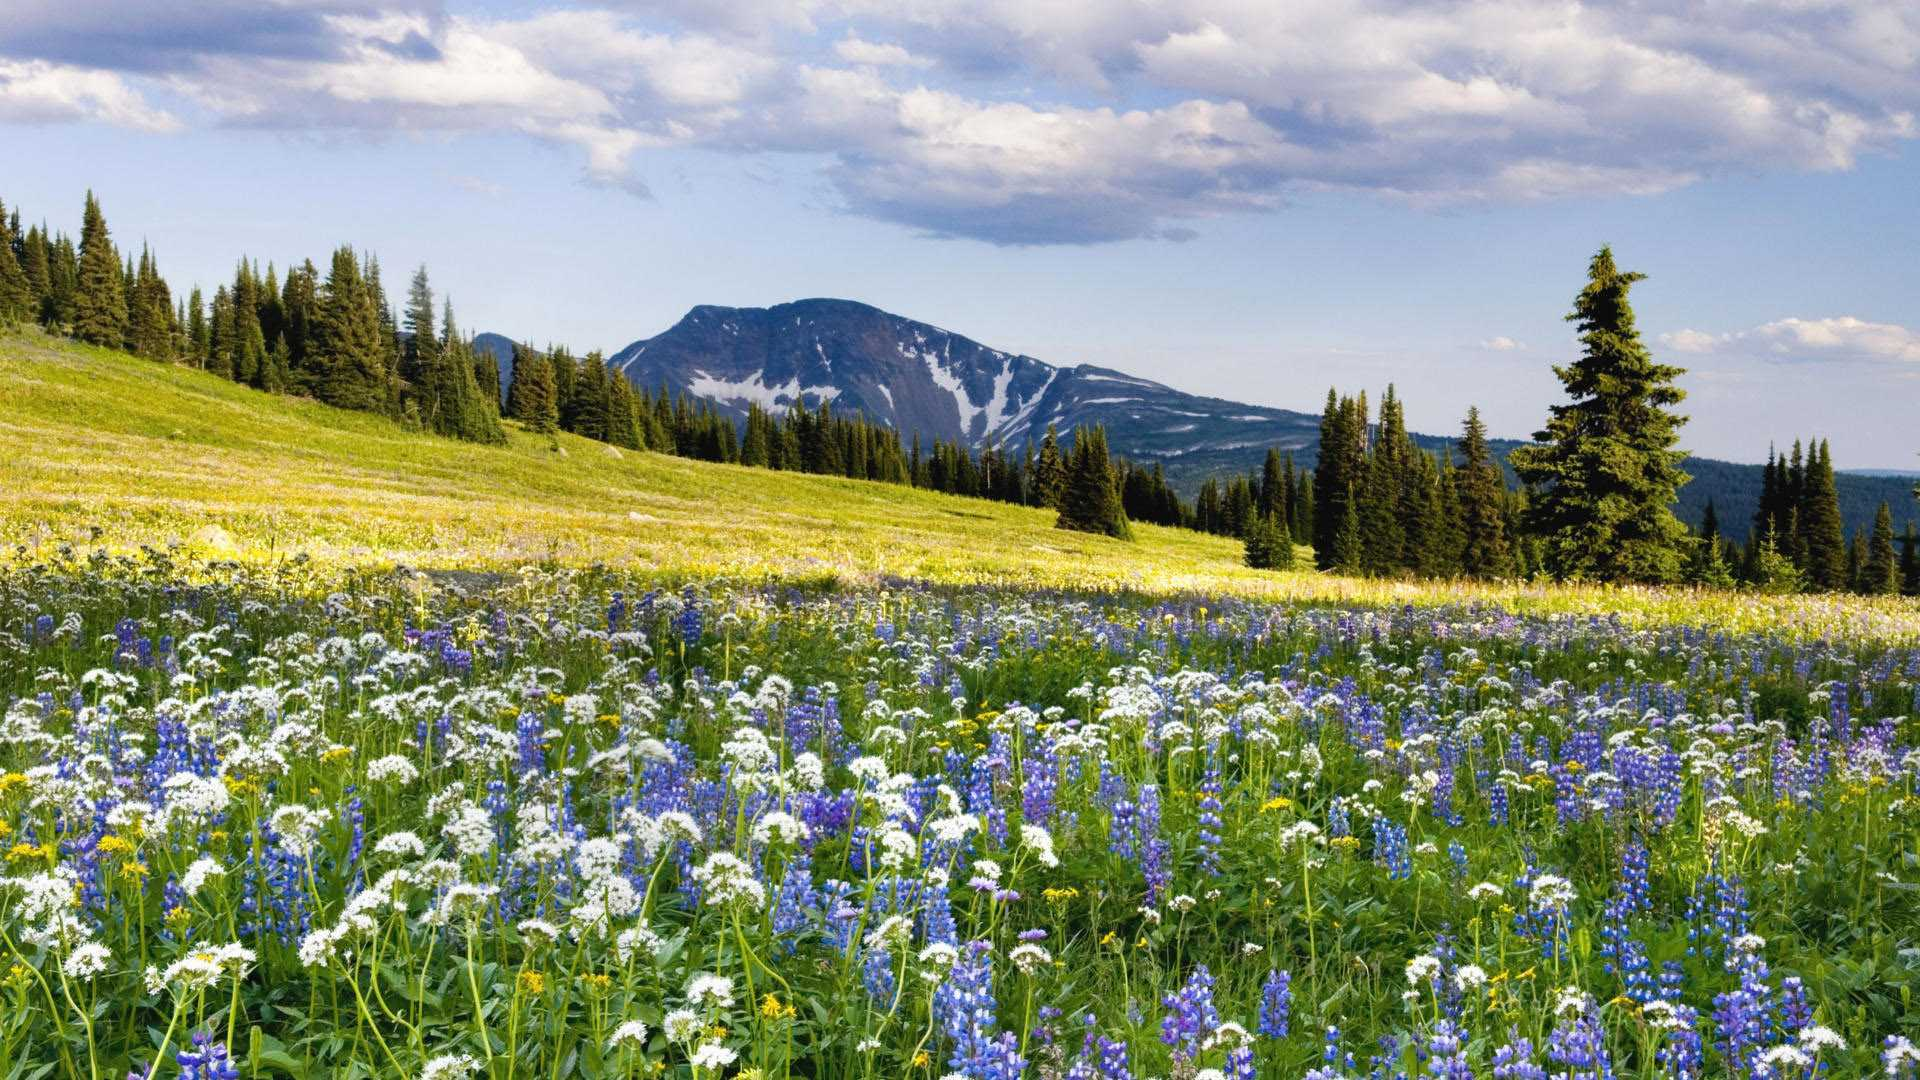 spring natural scenery hd - photo #24